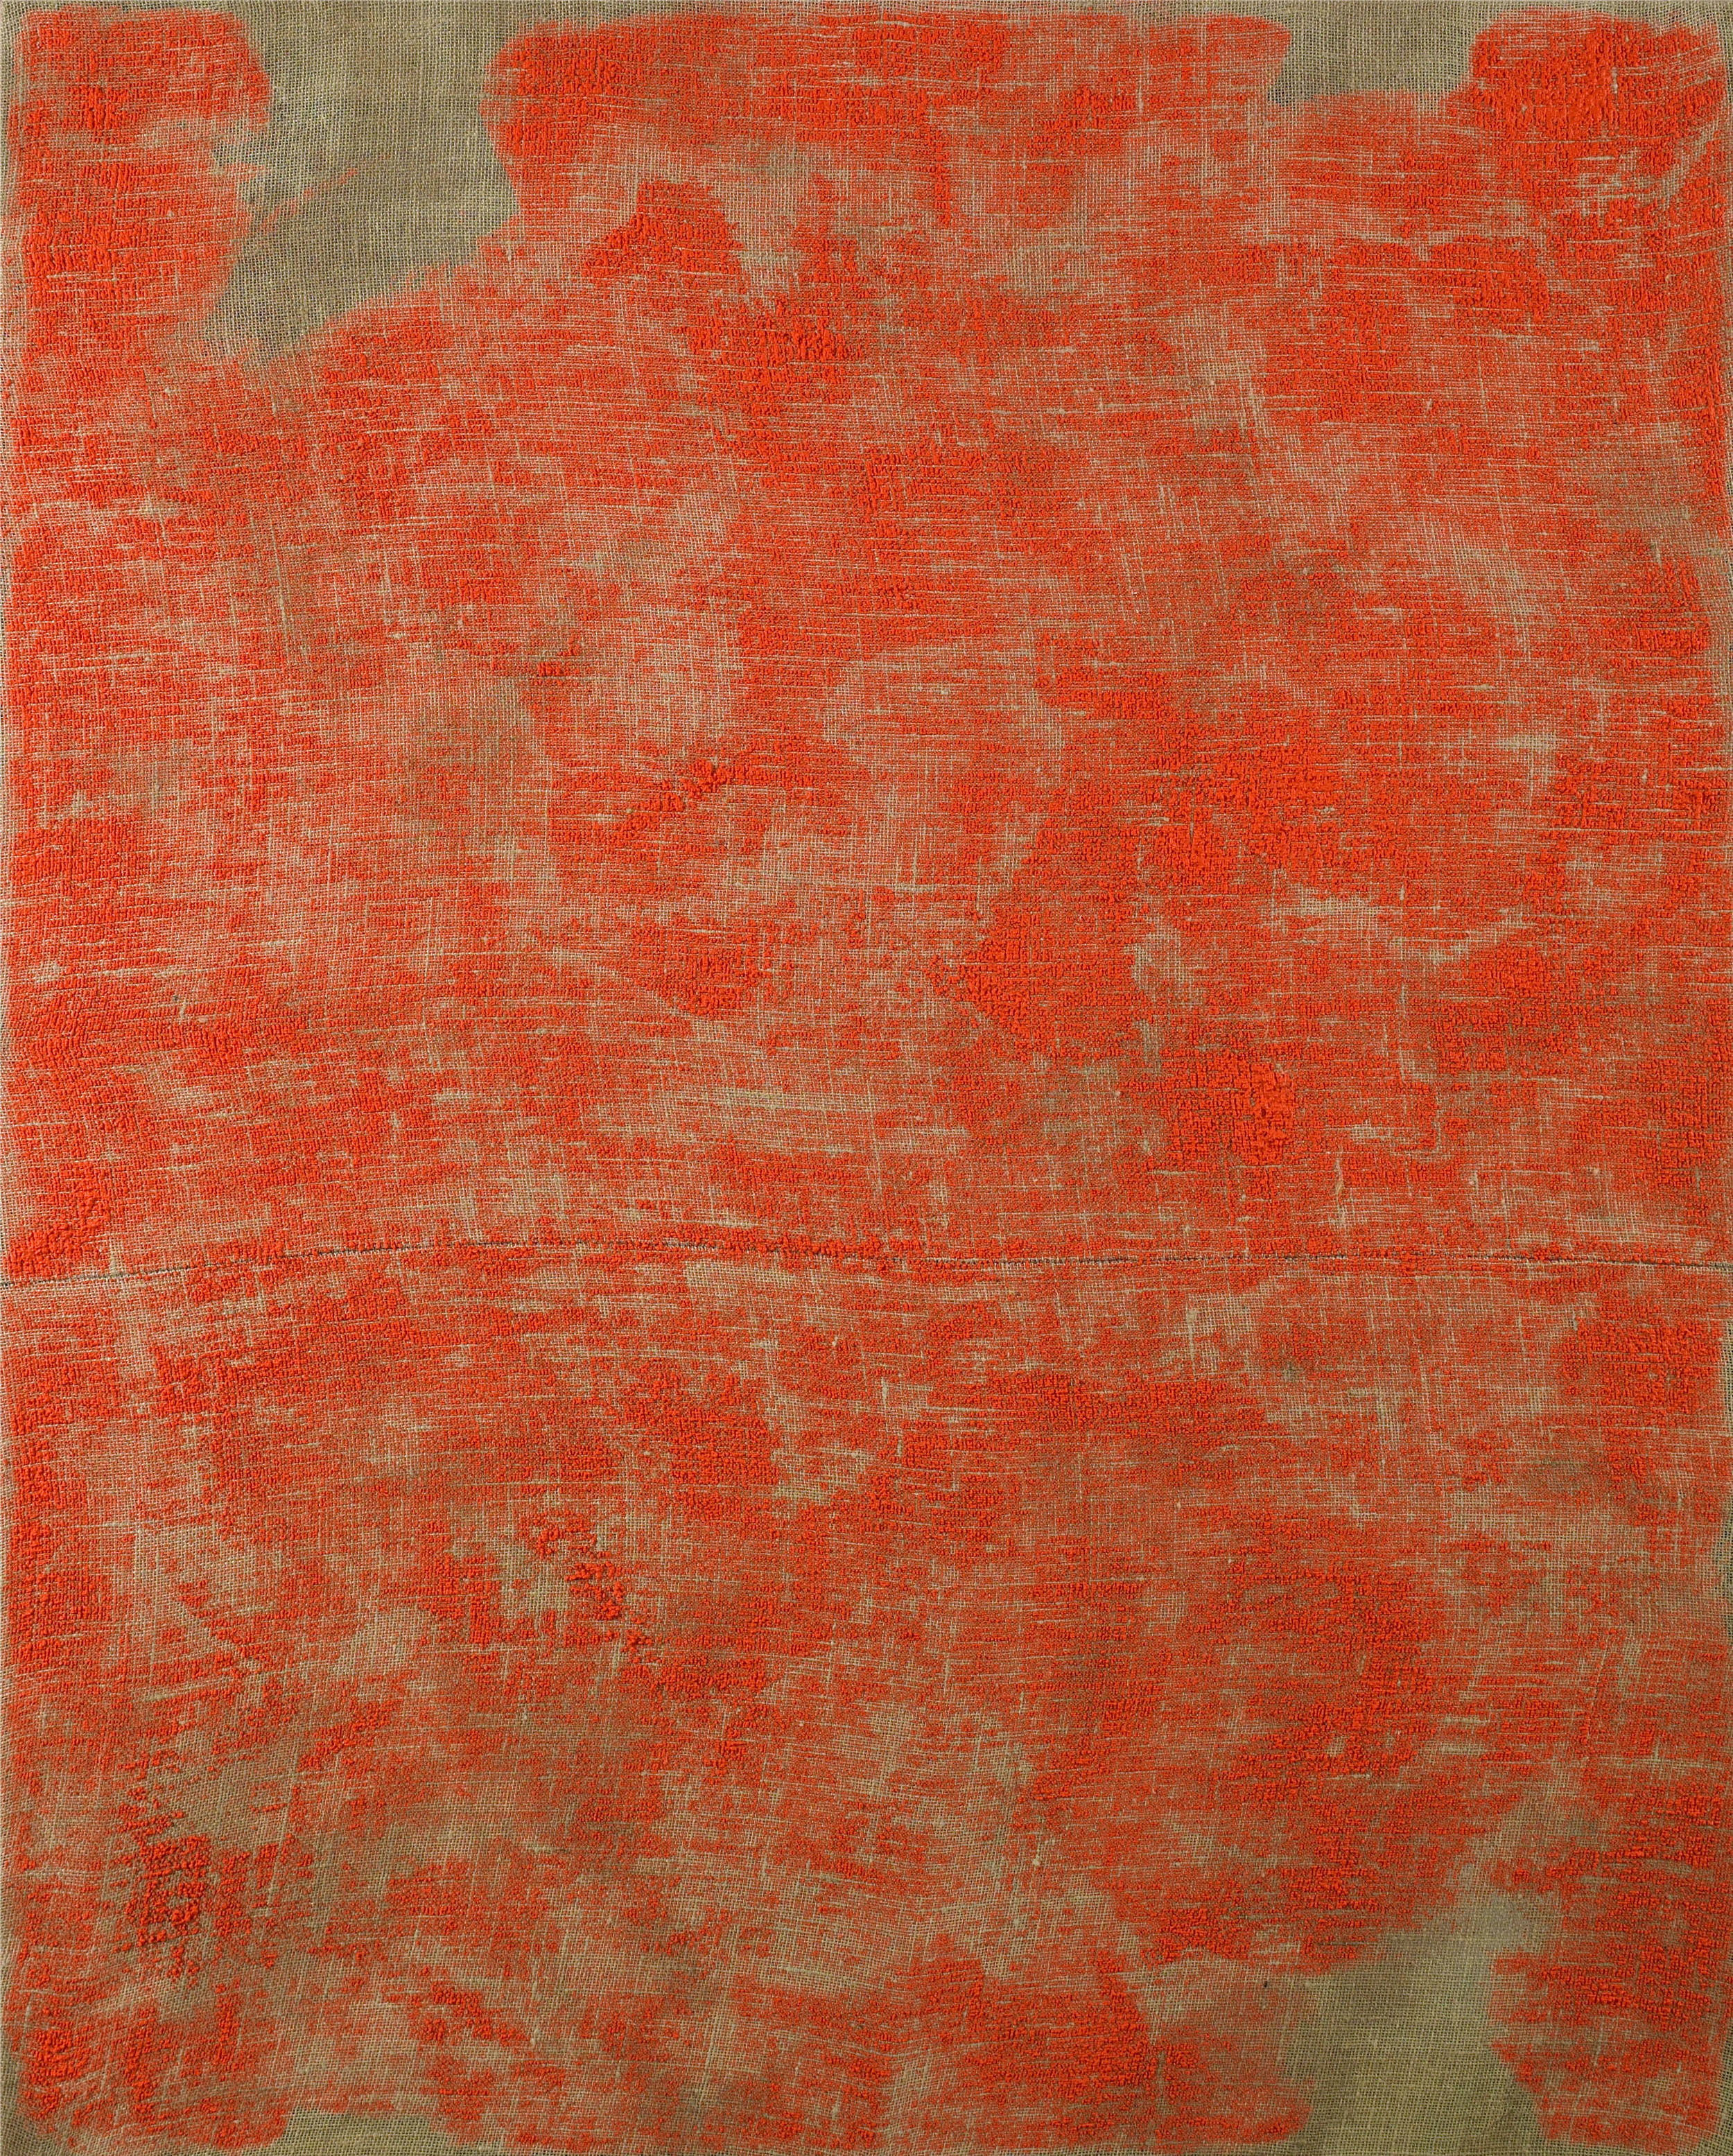 Porosity (Brushed II), 2014  , acrylic on burlap, 60 x 48 inches